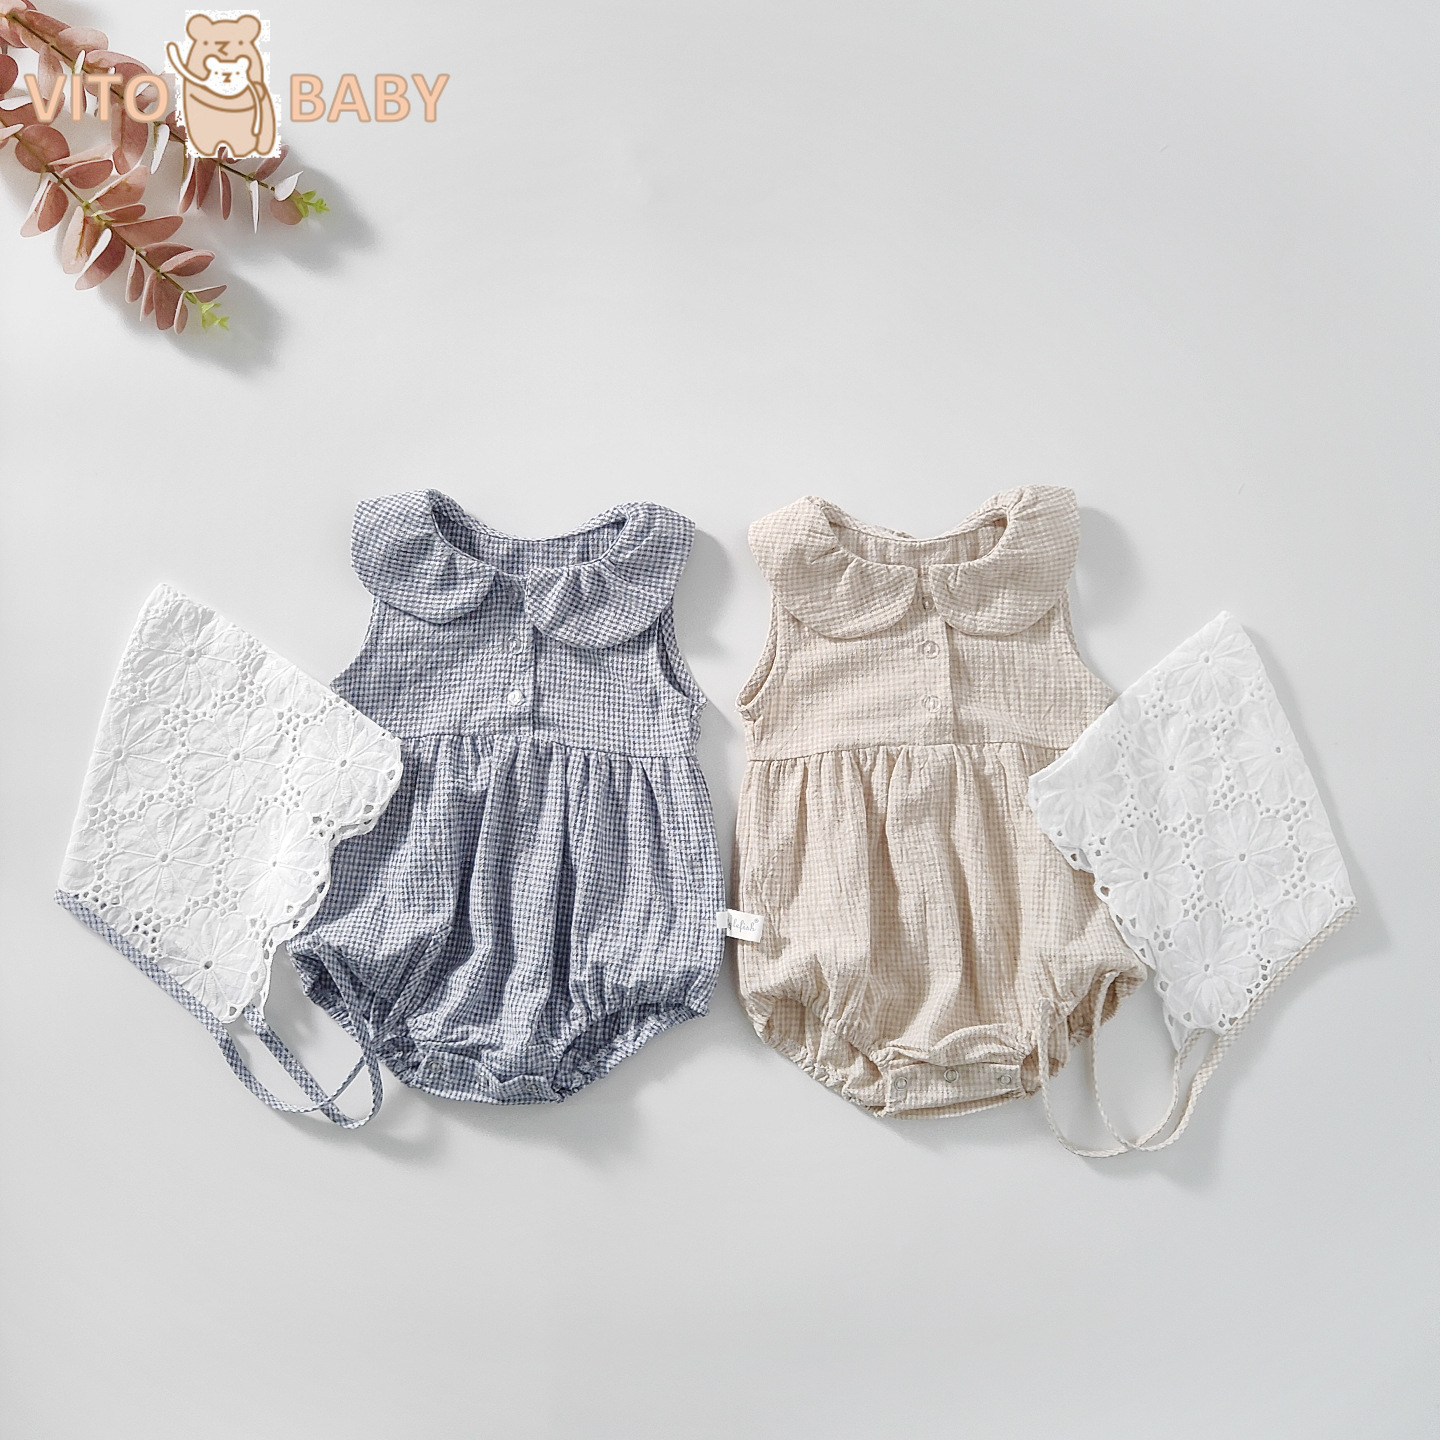 Baby Girls Romper Cotton Broken Beautiful Design Jumpsuit with Rompers Knitted Ruffle Outfit